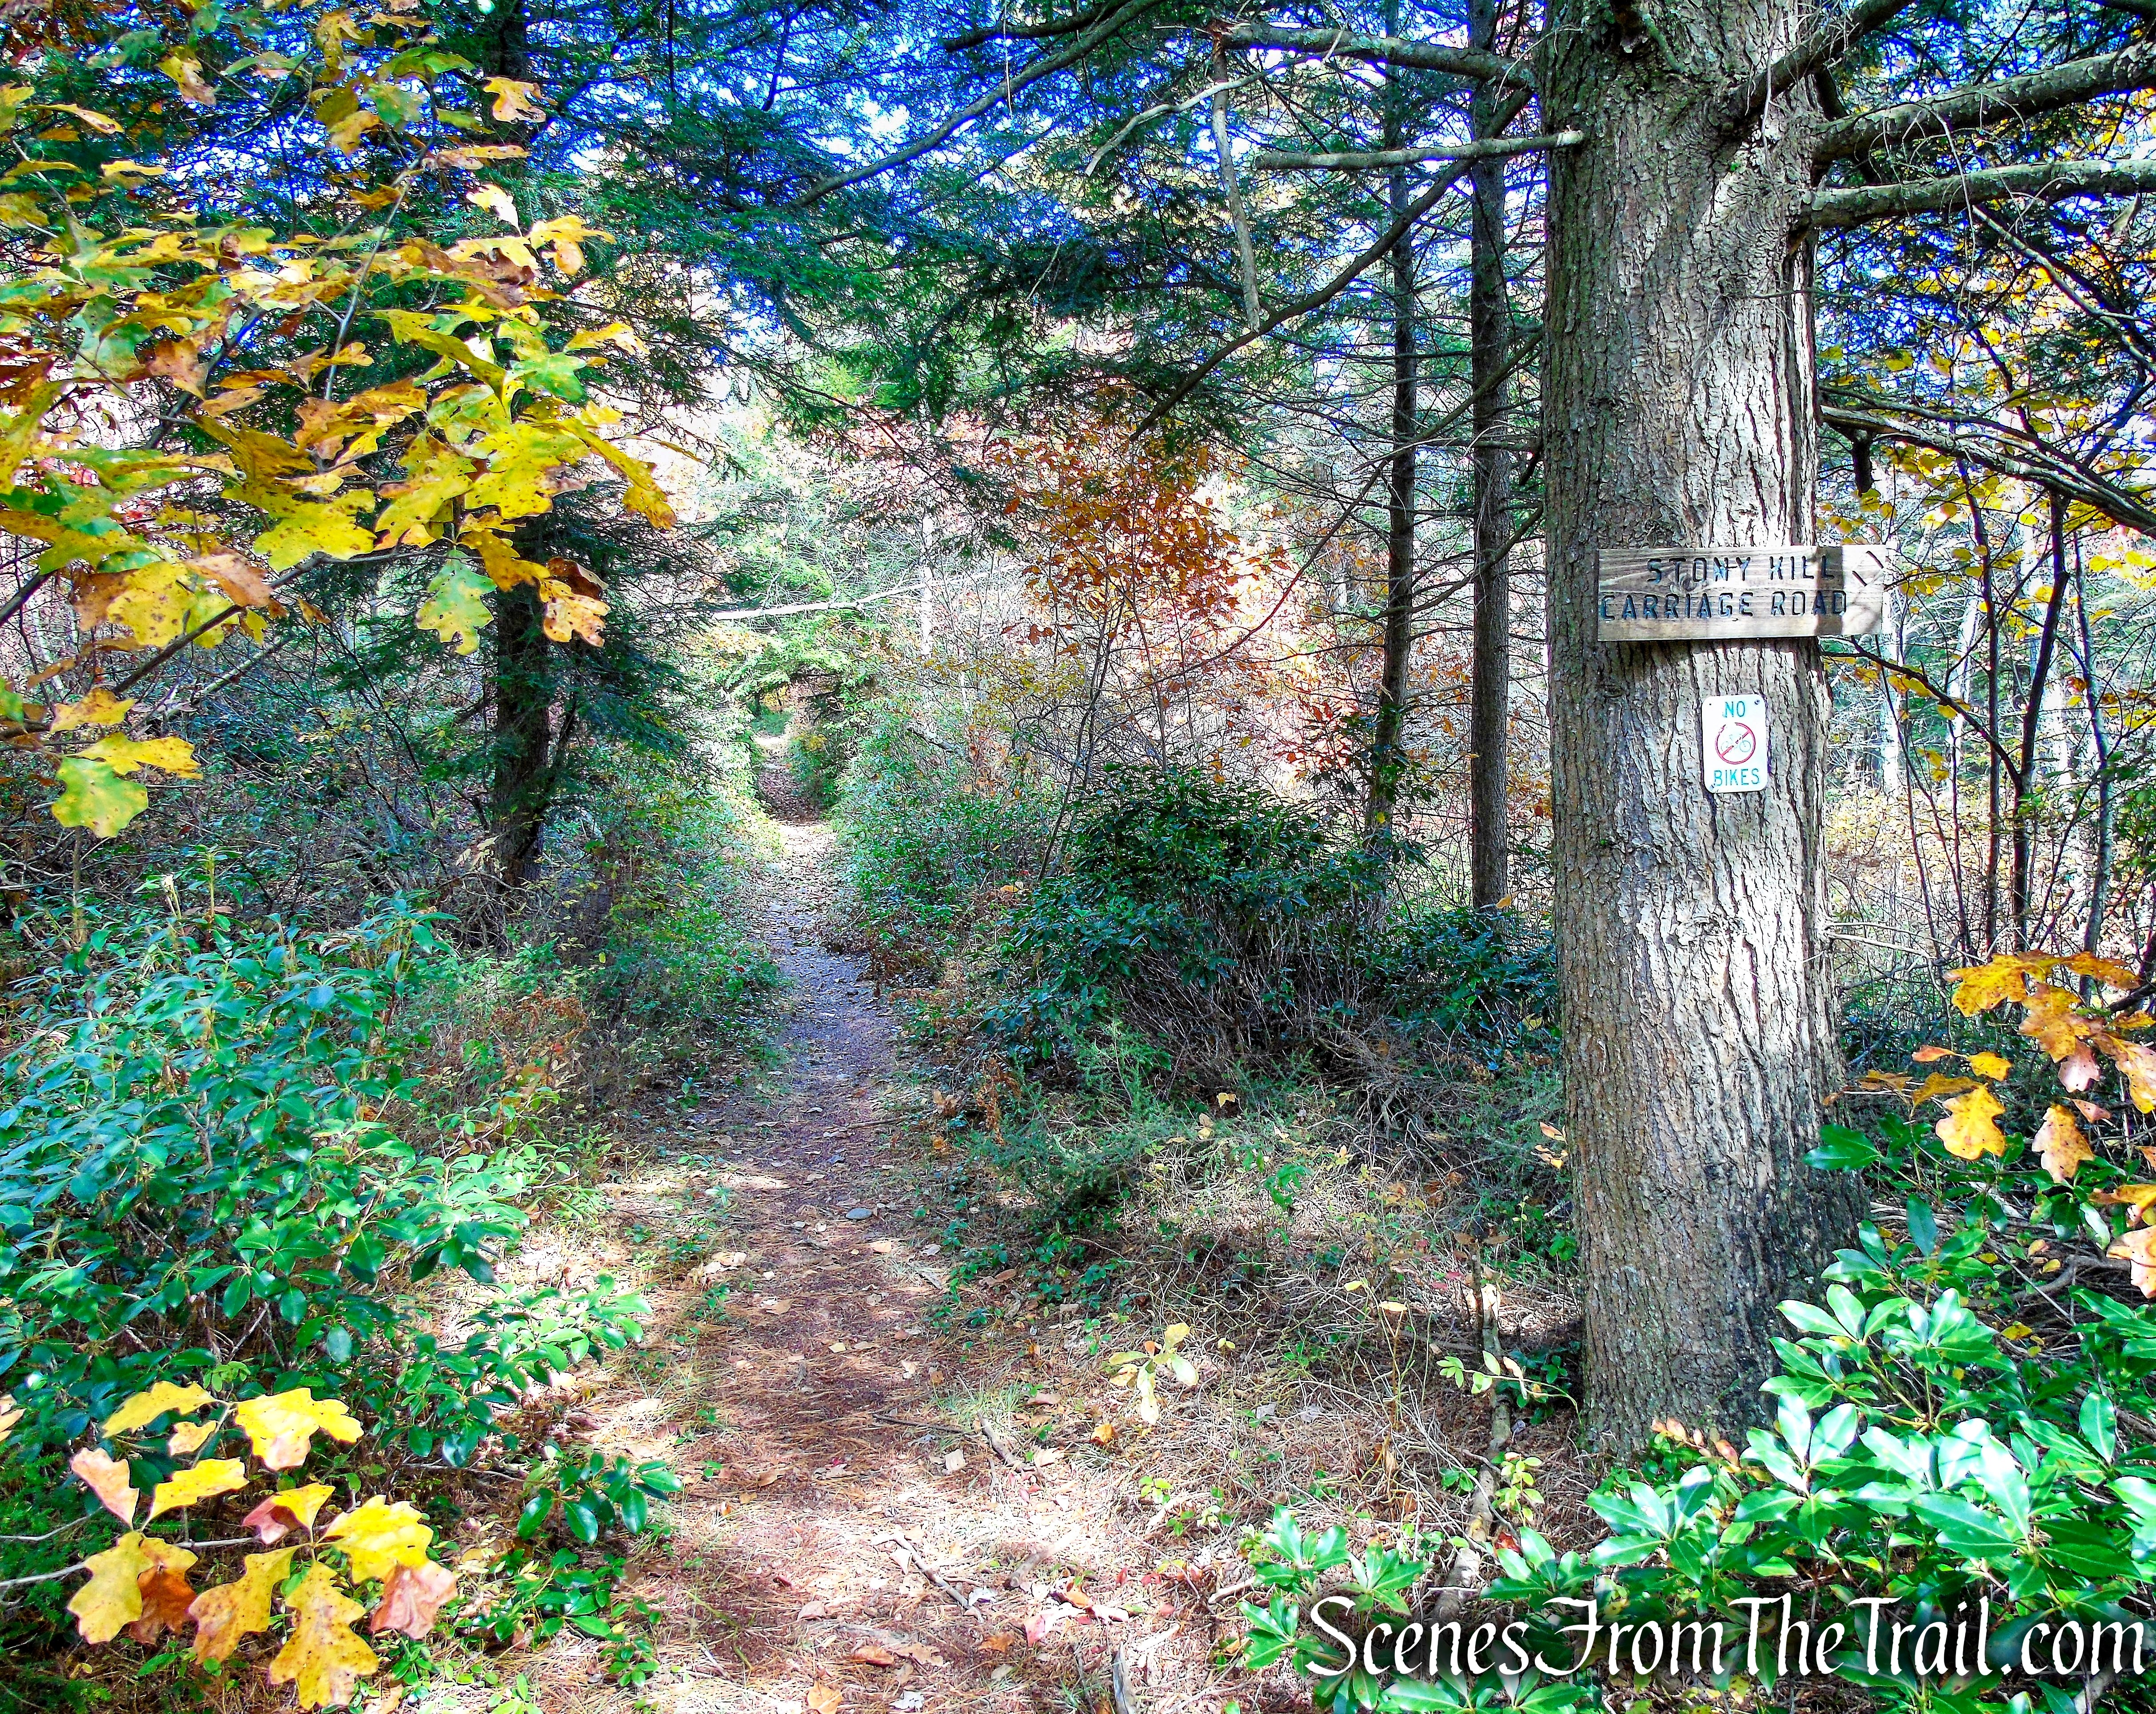 Stony Kill Carriage Road - Minnewaska State Park Preserve